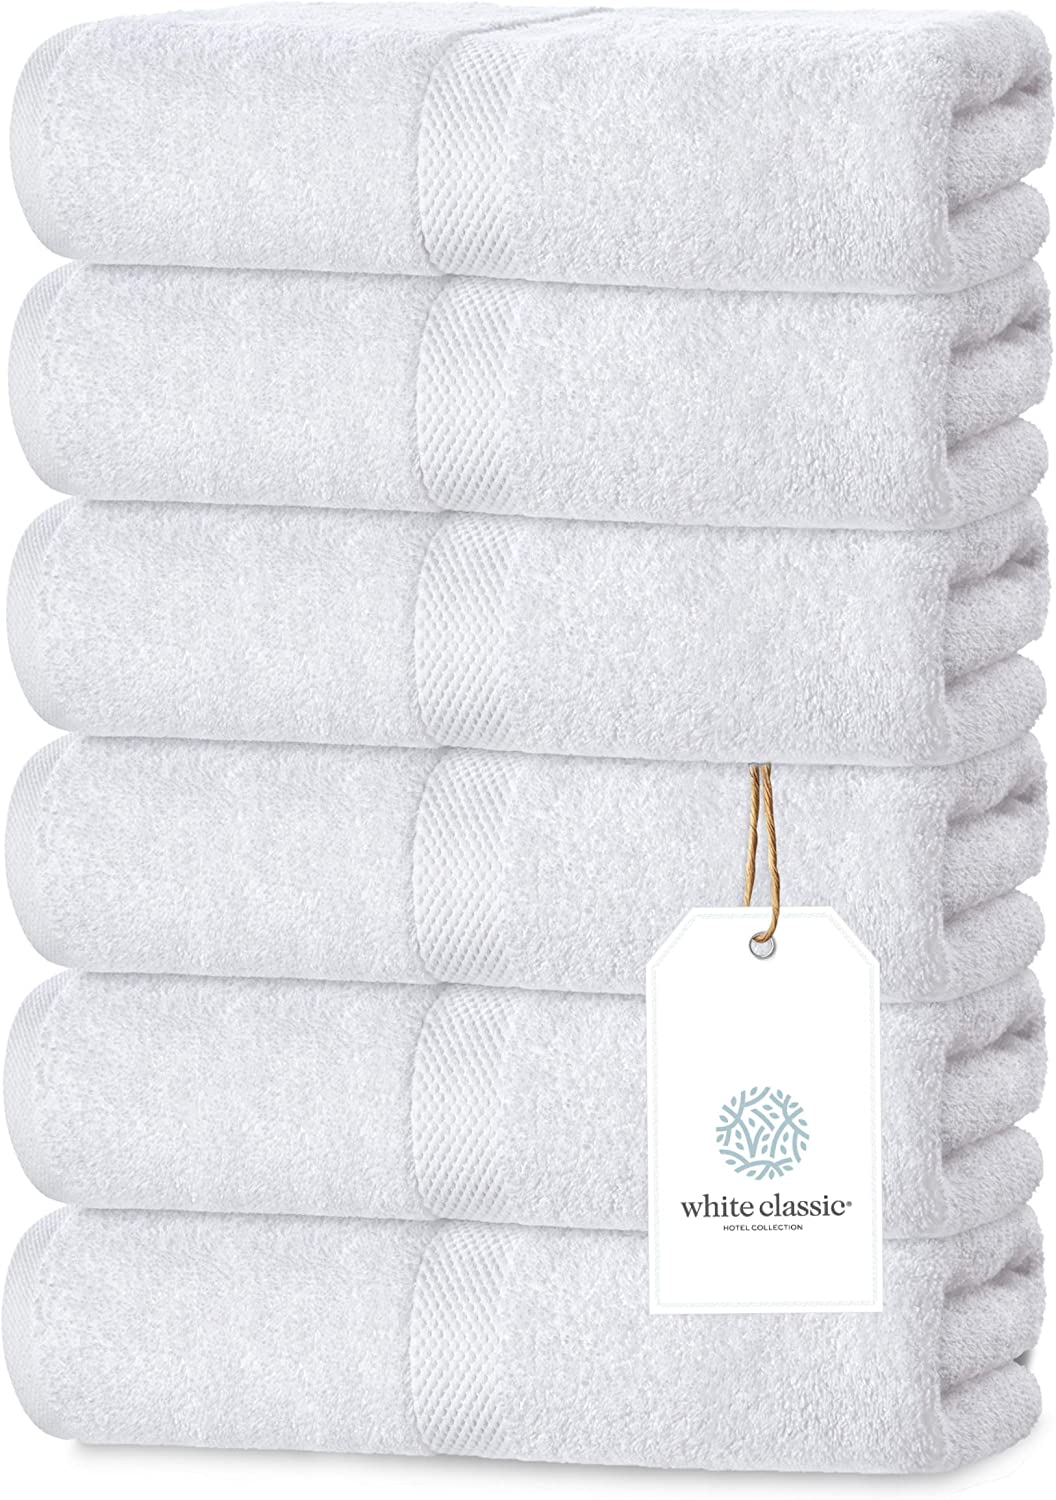 Luxury White Hand Towels Soft Circlet Egyptian Cotton Highly Absorbent Hotel Spa Bathroom Towel Collection 16x30 Inch Set Of 6 Home Kitchen